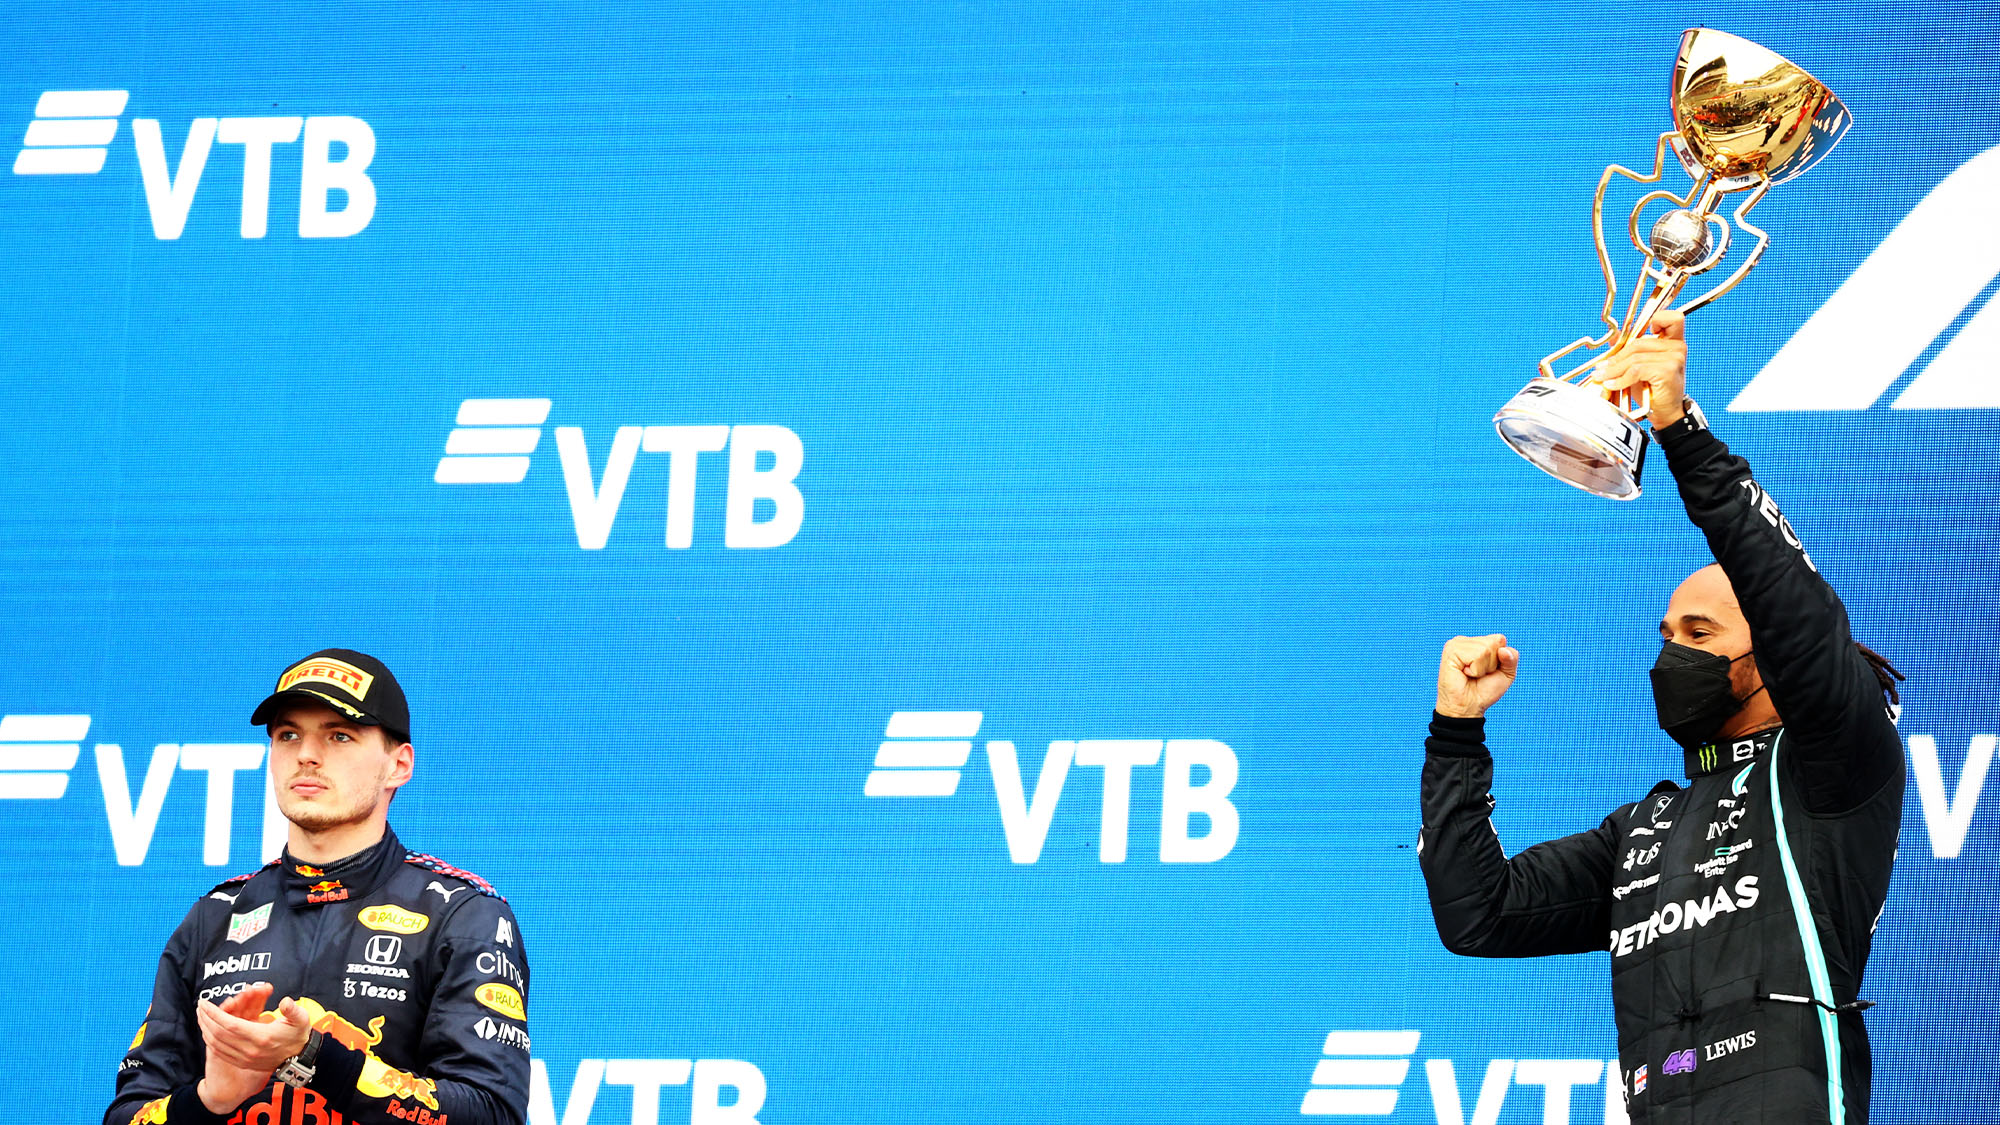 Lewis Hamilton and Max Verstappen on the podium at Sochi 2021